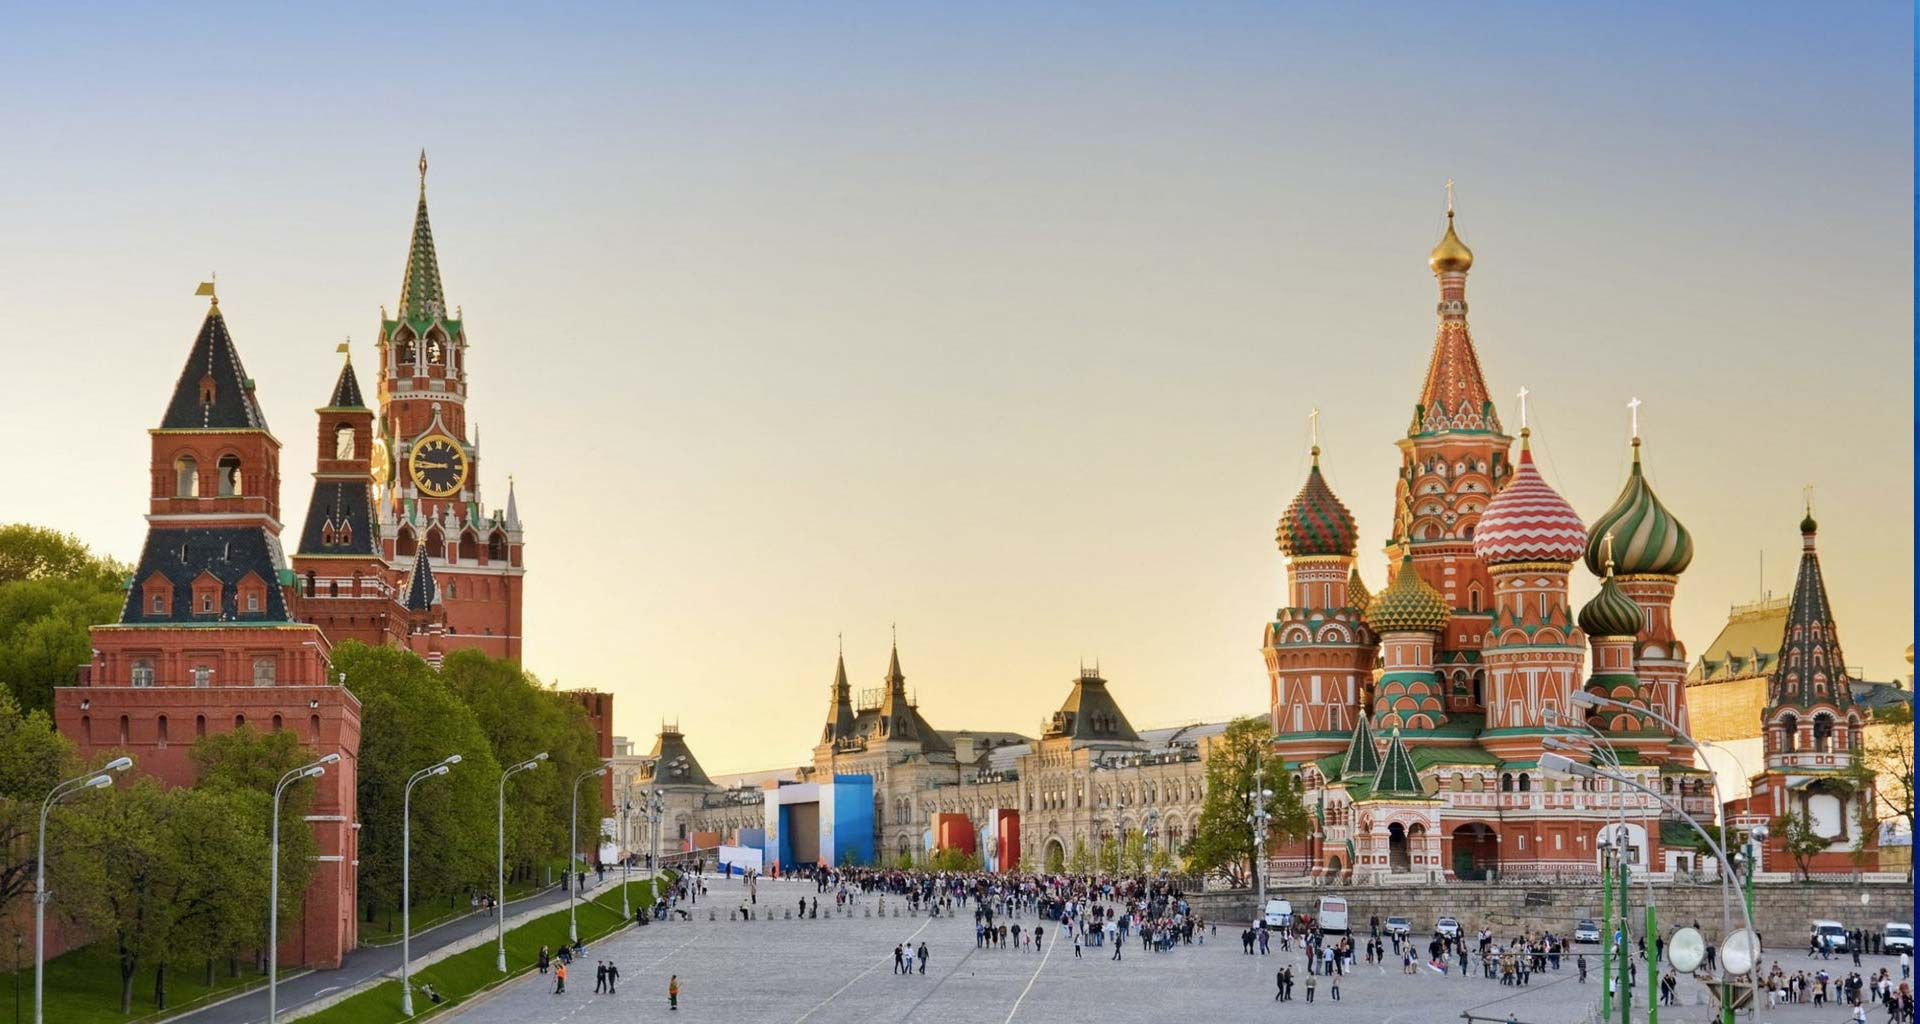 Red Square in Moscow, Russia.